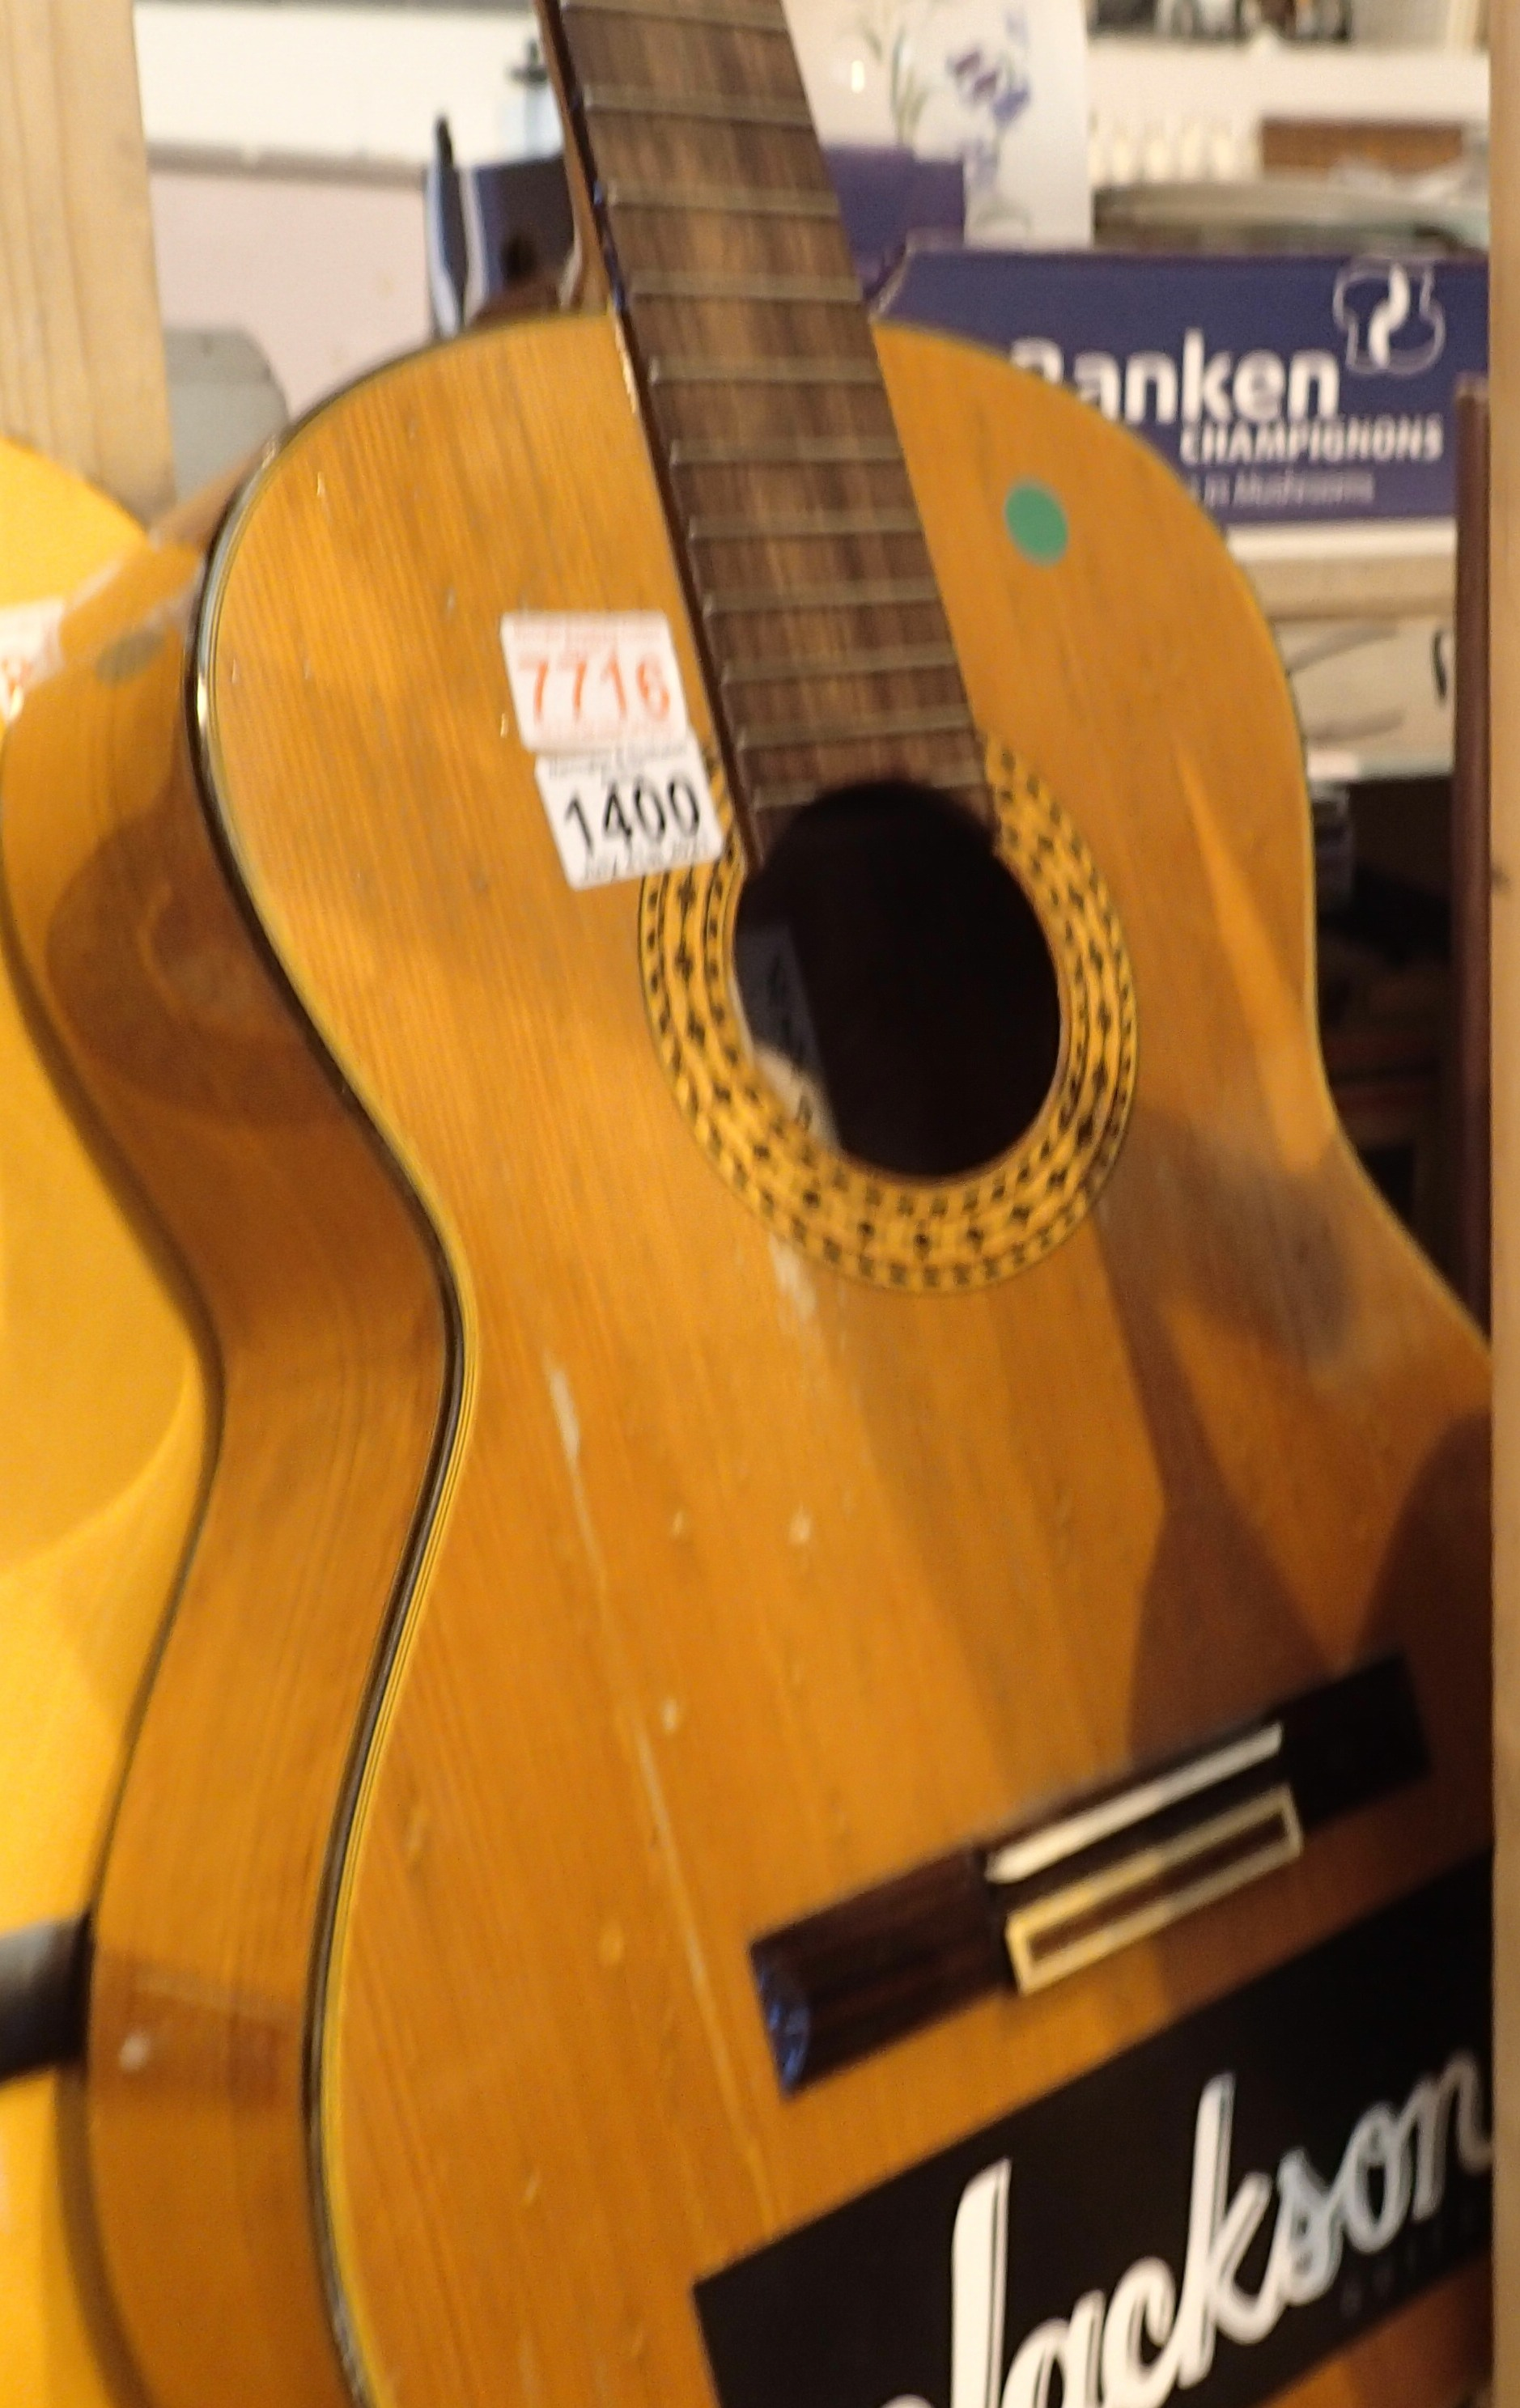 Kimbara six string acoustic guitar. Not available for in-house P&P, contact Paul O'Hea at